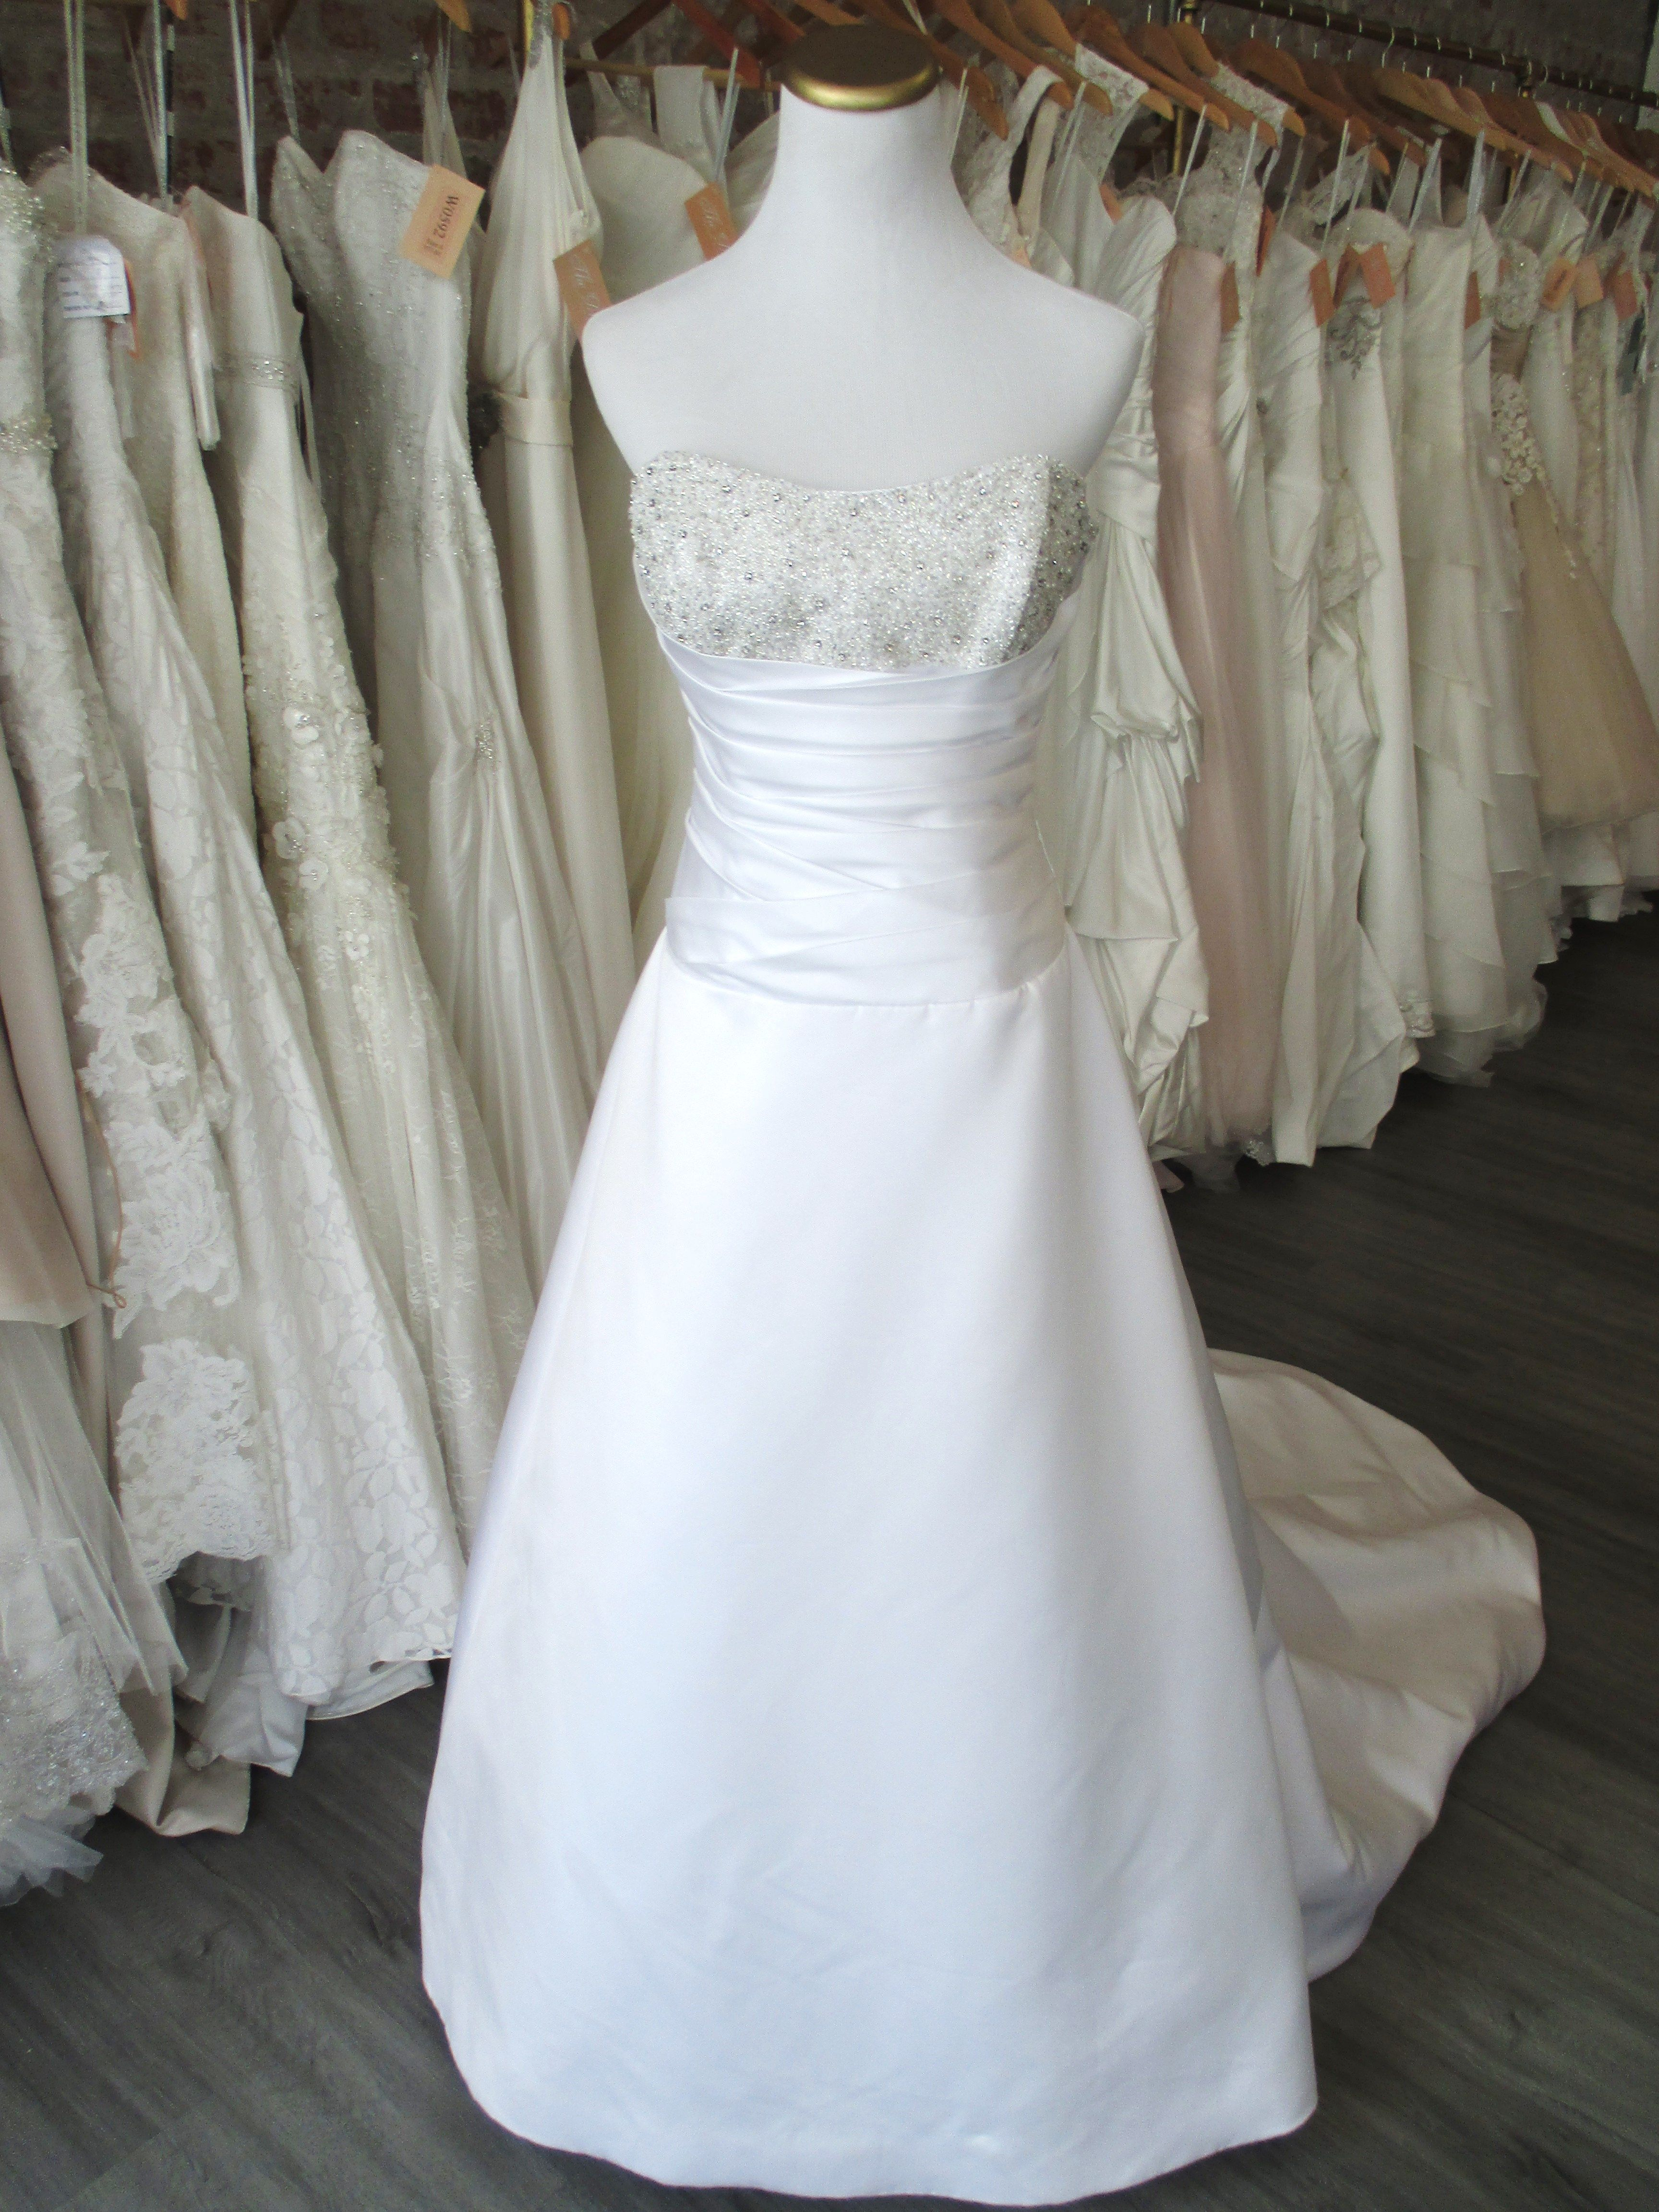 White and silver wedding dresses  This white dress by Bride  Be is a size  aline silhouette